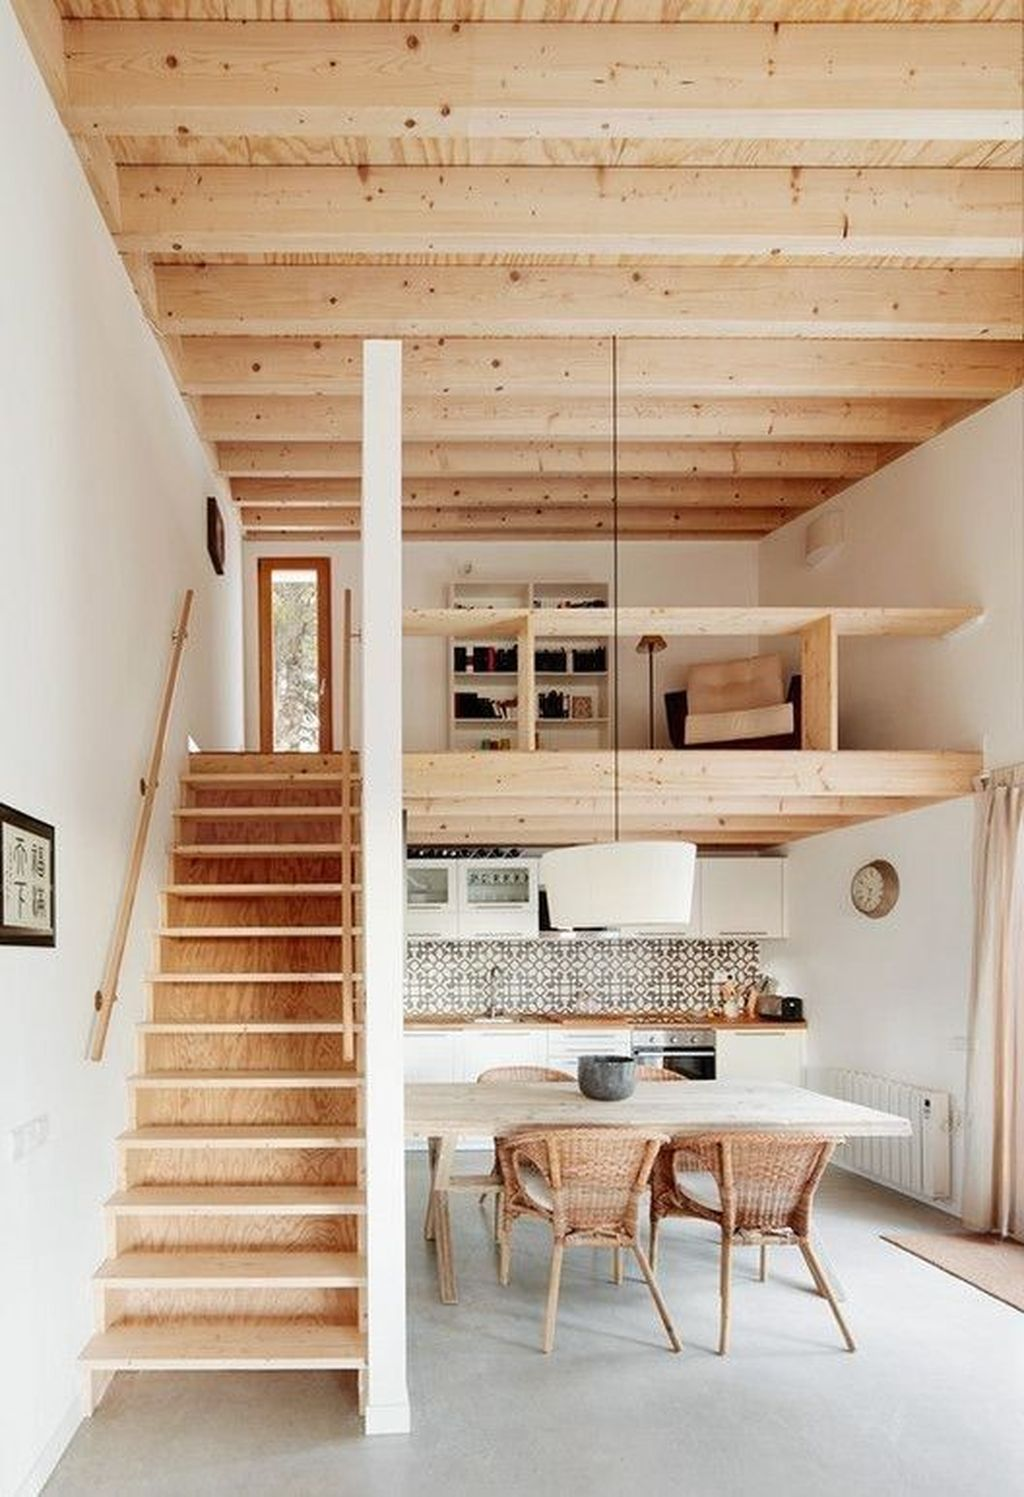 Tiny House Design Ideas To Inspire You, Easy Furniture DIY Projects For Interior Design, Cute Furniture Tiny House For Simple Life.